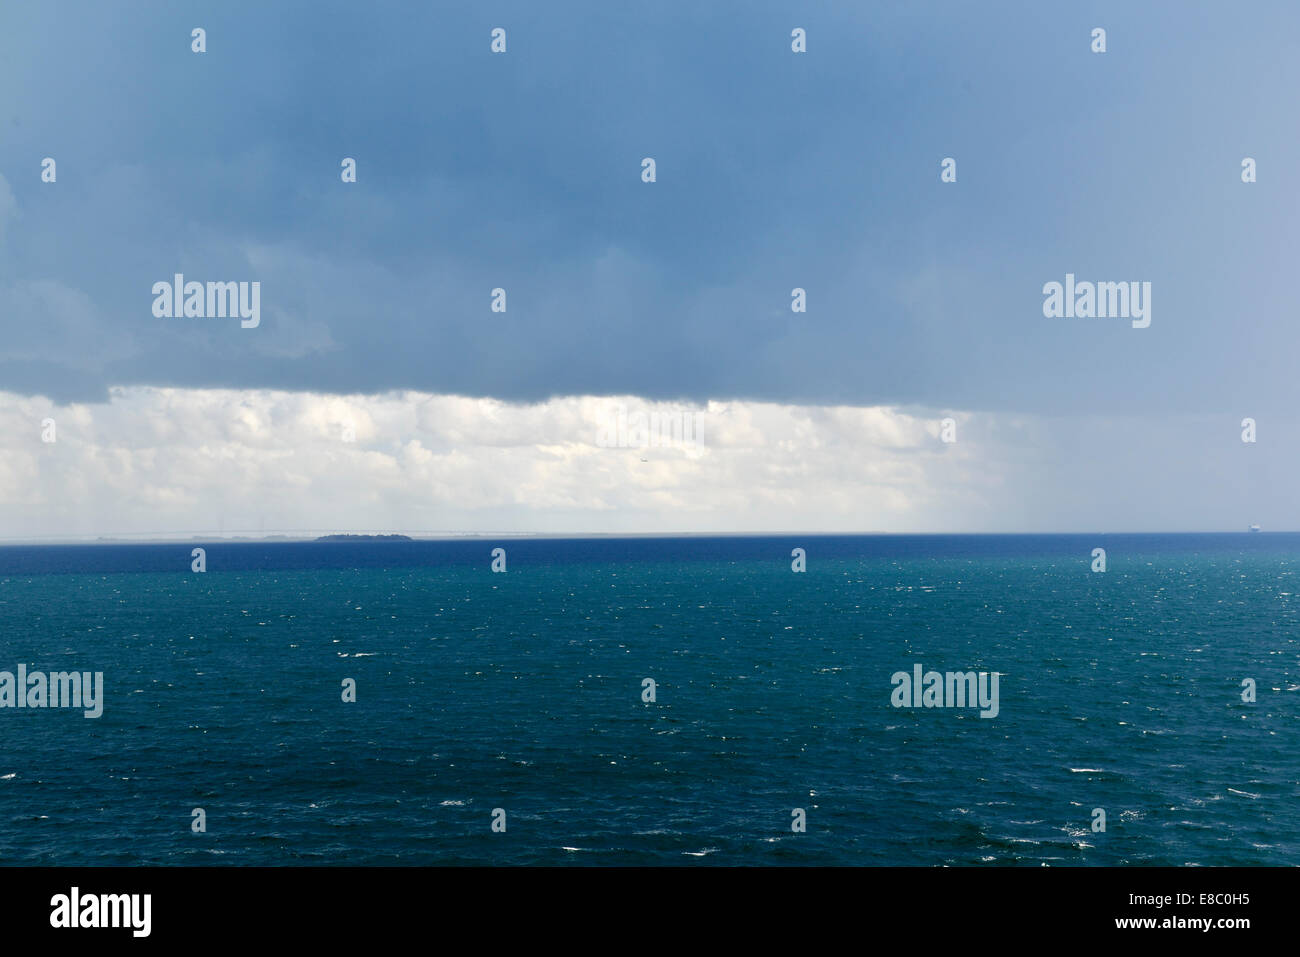 Baltic Sea Squall Line, View from Copenhagen Ferry to Oslo, Norway 140818_62379 - Stock Image